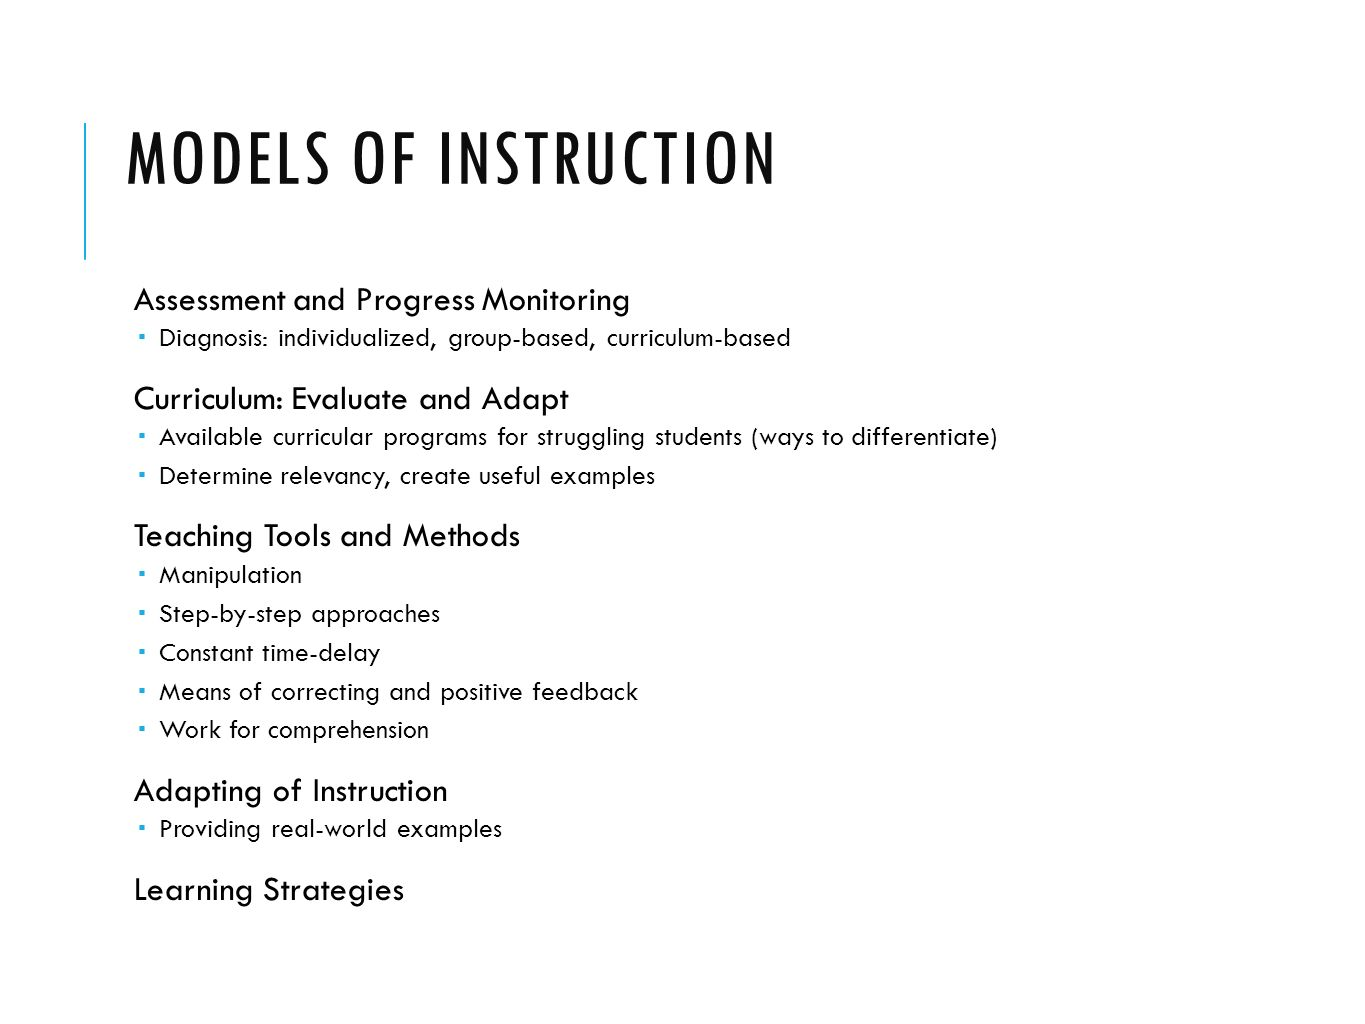 MODELS OF INSTRUCTION Assessment and Progress Monitoring  Diagnosis: individualized, group-based, curriculum-based Curriculum: Evaluate and Adapt  Available curricular programs for struggling students (ways to differentiate)  Determine relevancy, create useful examples Teaching Tools and Methods  Manipulation  Step-by-step approaches  Constant time-delay  Means of correcting and positive feedback  Work for comprehension Adapting of Instruction  Providing real-world examples Learning Strategies